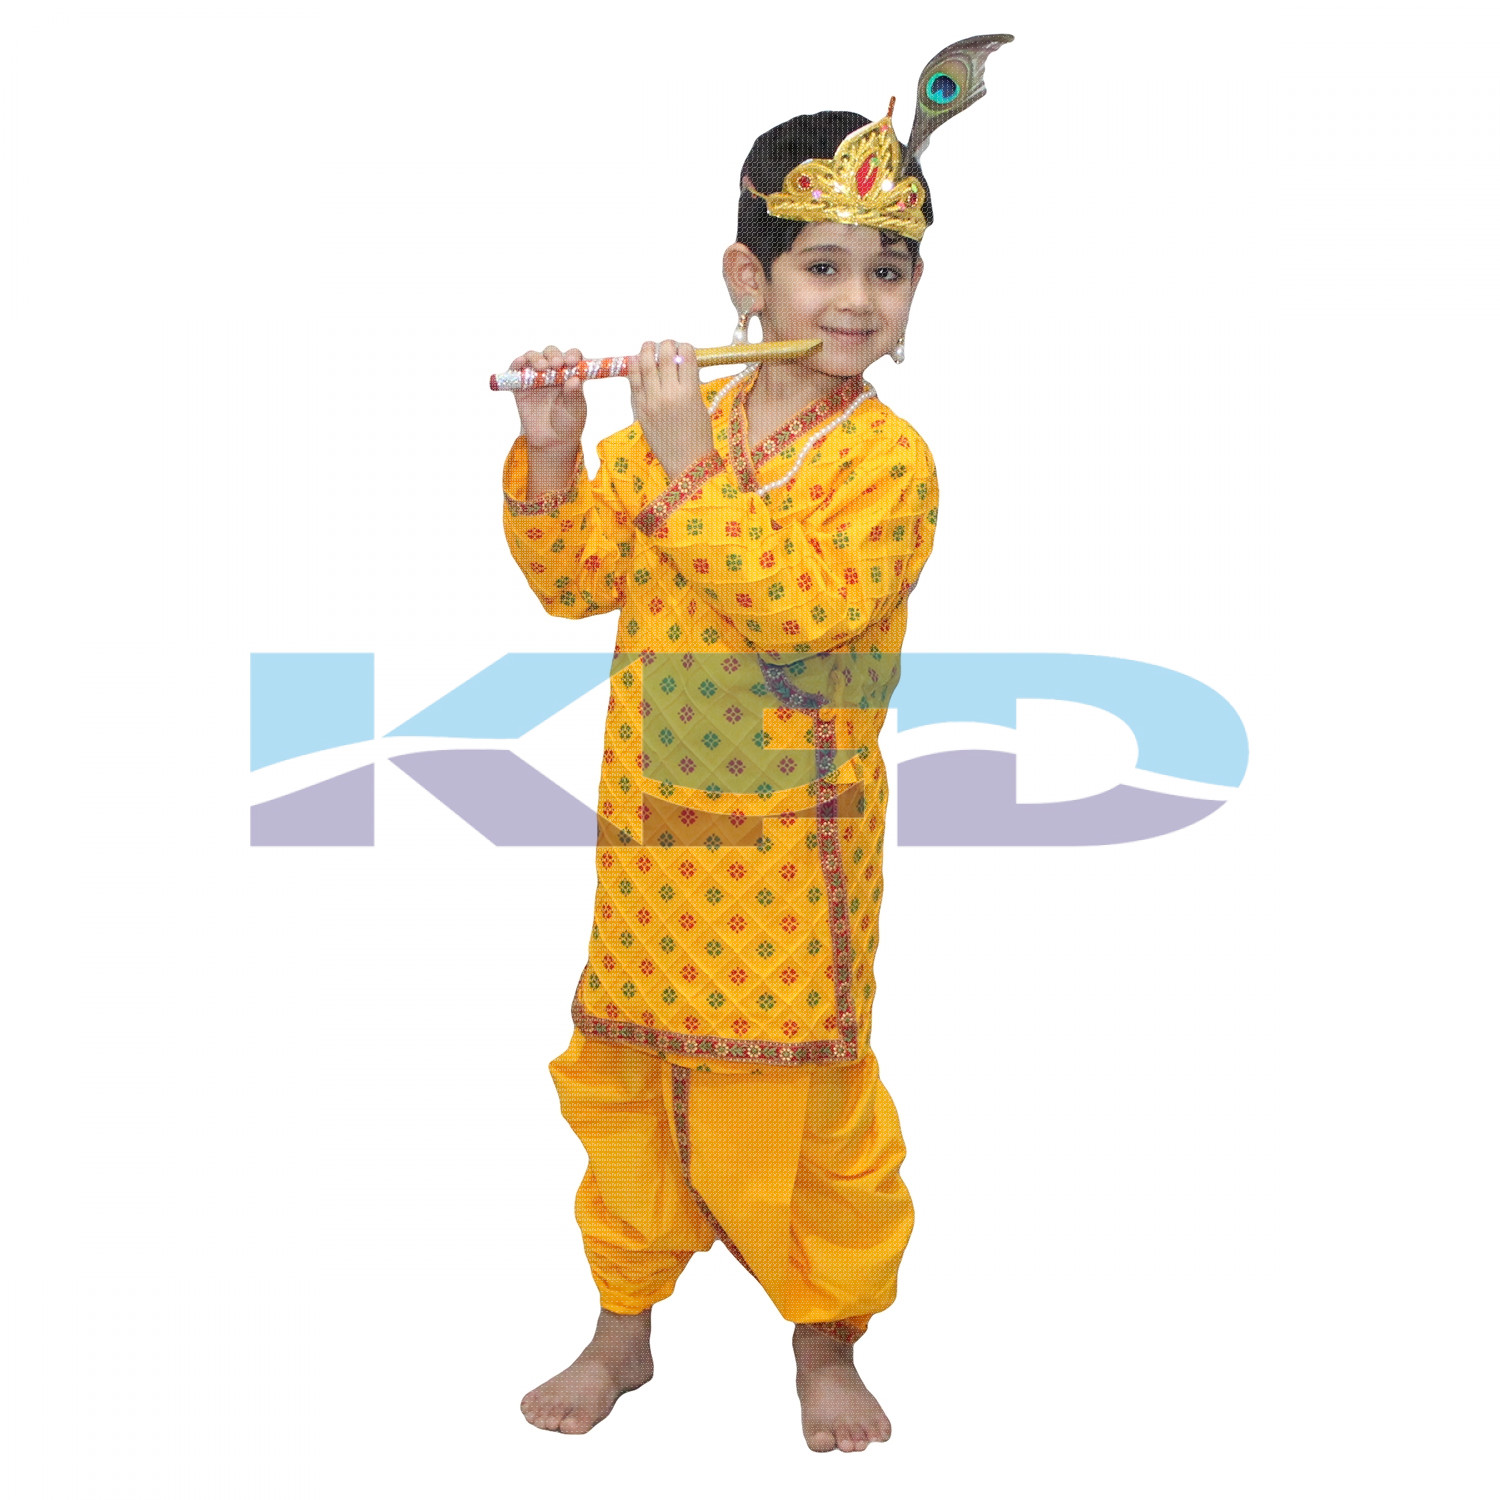 Krishna Printed Without Jewellery fancy dress for kids,Krishnaleela/Janmashtami/Kanha/Mythological Character for Annual functionTtheme Party/Competition/Stage Shows Dress